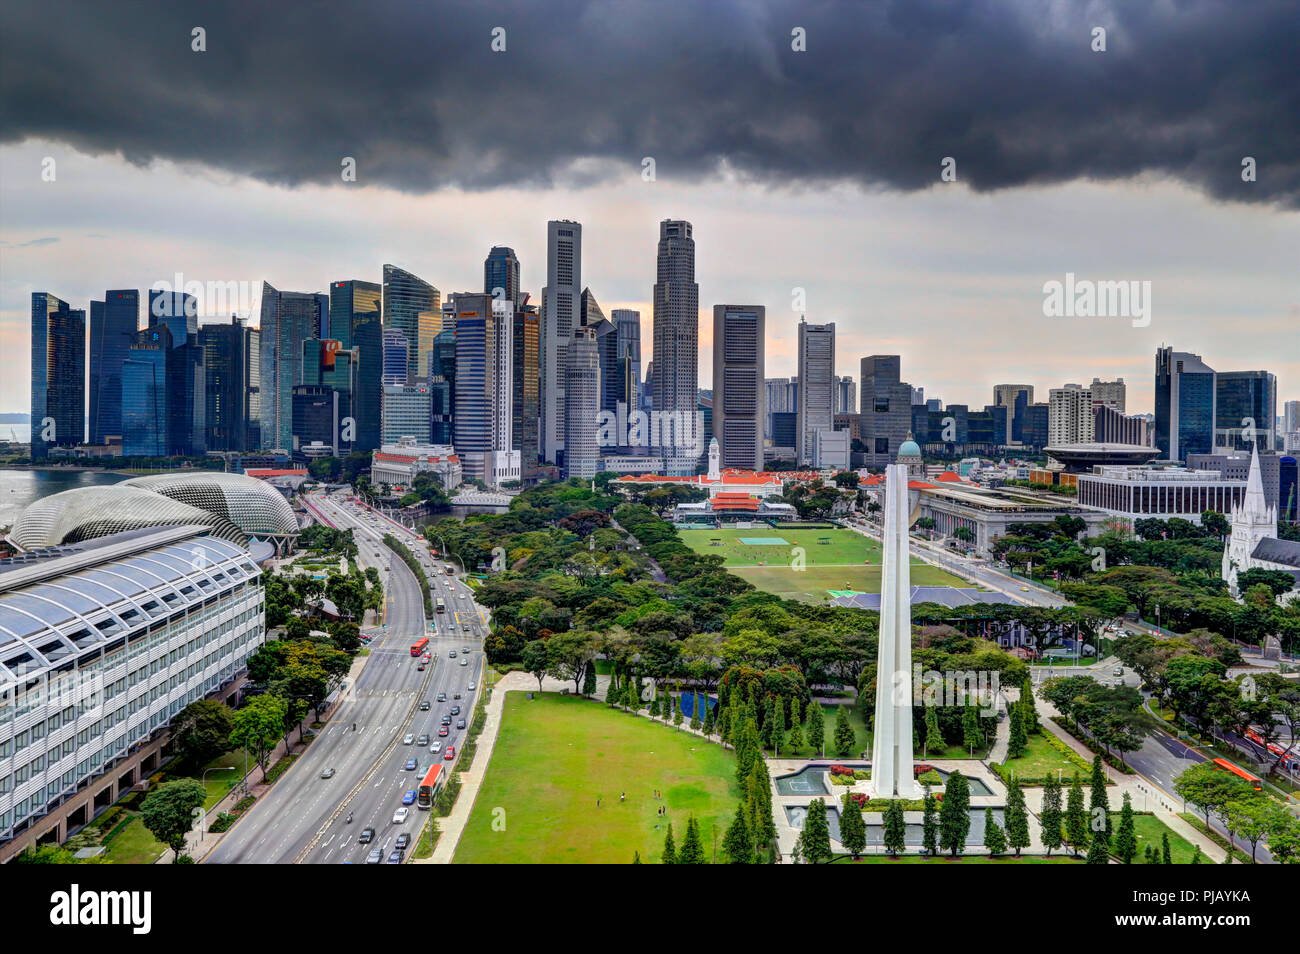 Nuage noir sur la zone centrale, Ville, Quartier Central des Affaires de Singapour CDB Photo Stock